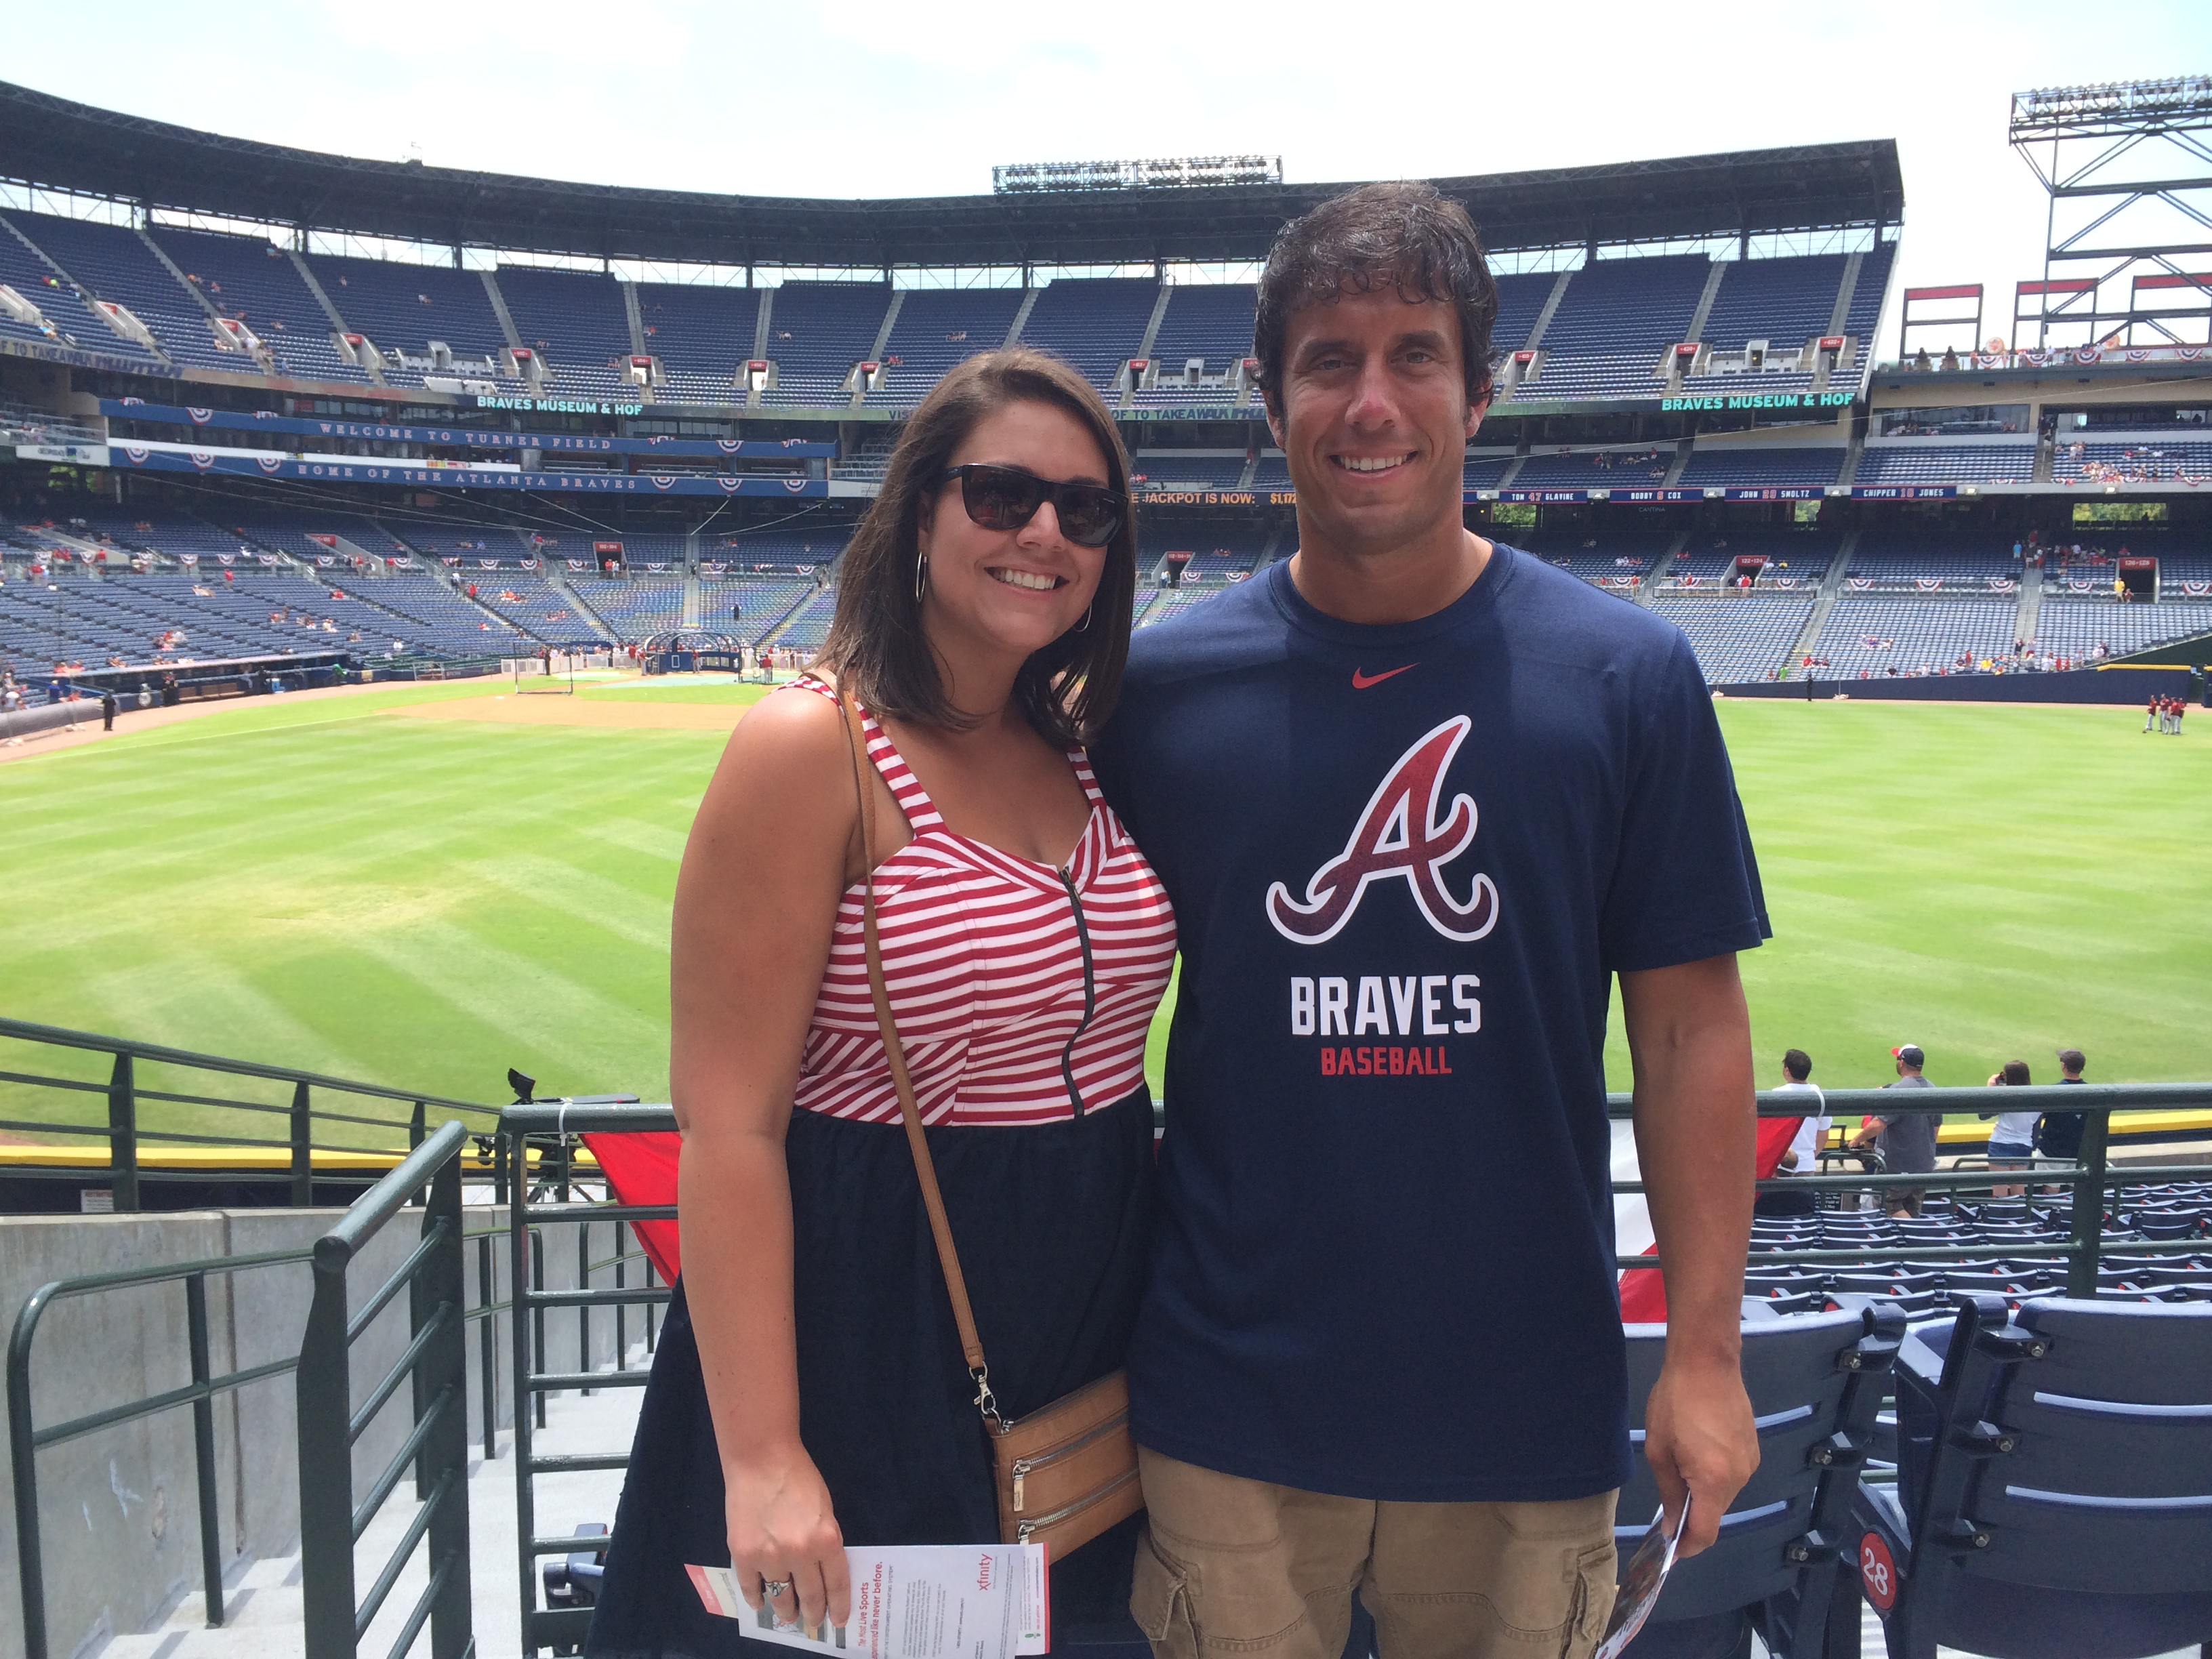 I was so happy to be at Turner Field.